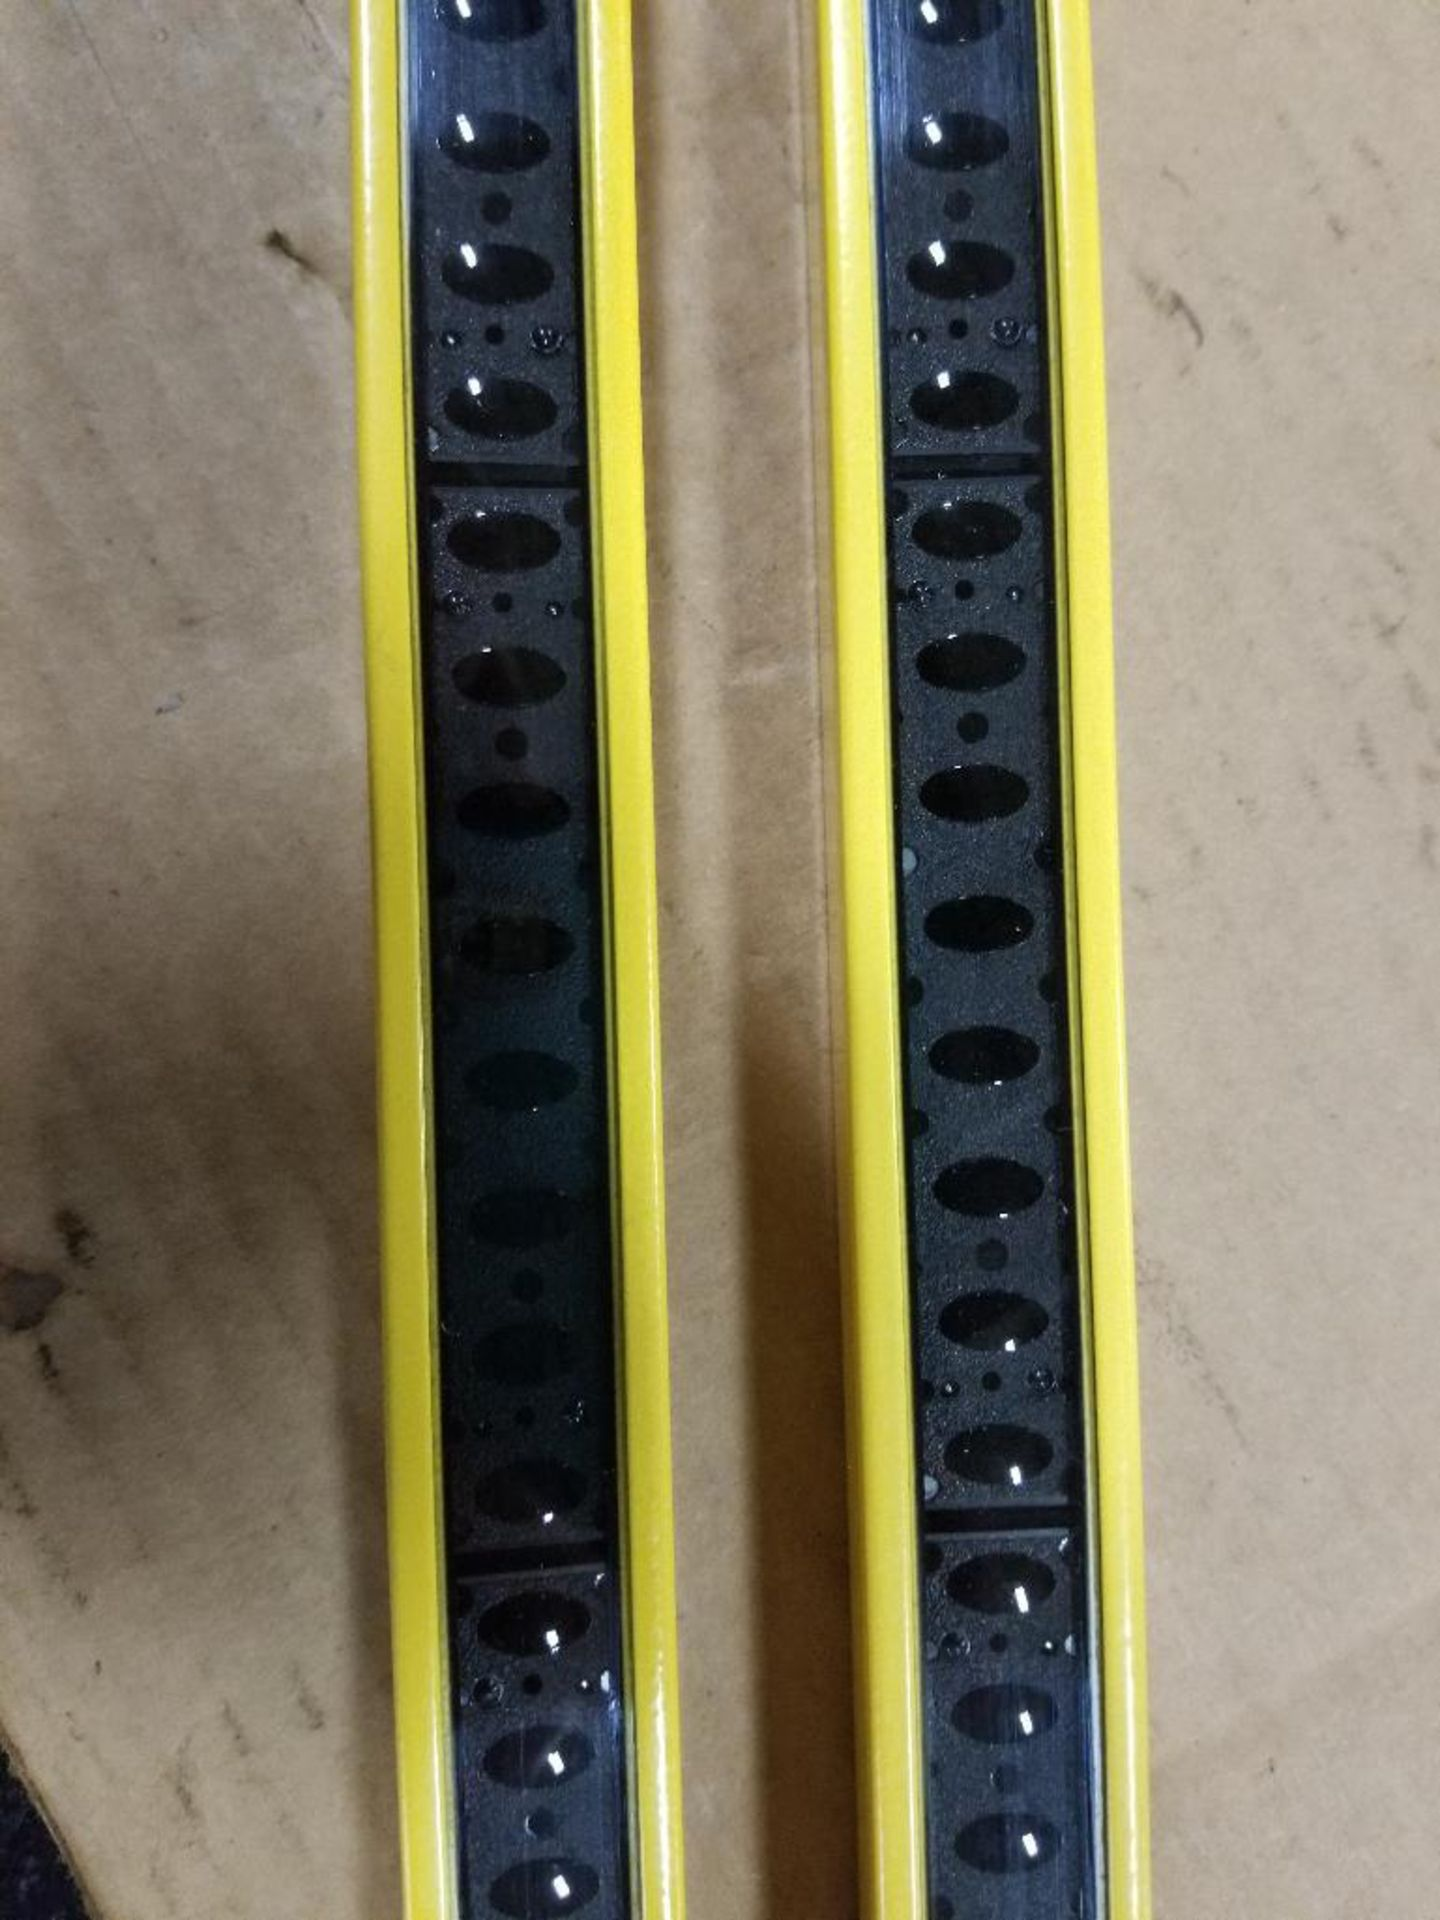 Banner Micro-Screen Light curtain transmitter / receiver set. USR4824Y, USE4824Y. - Image 3 of 6